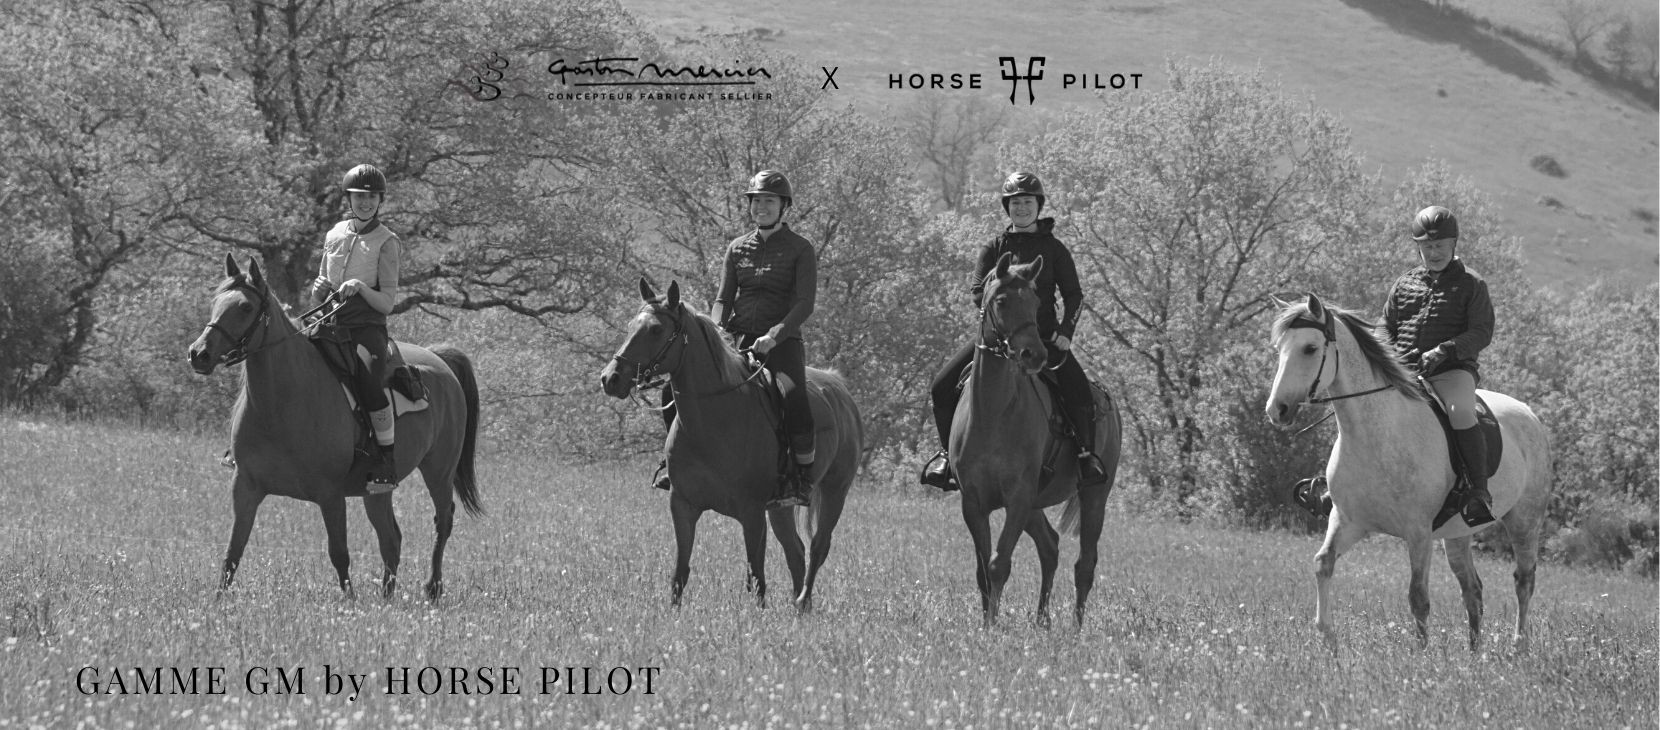 GM Line by Horse Pilot